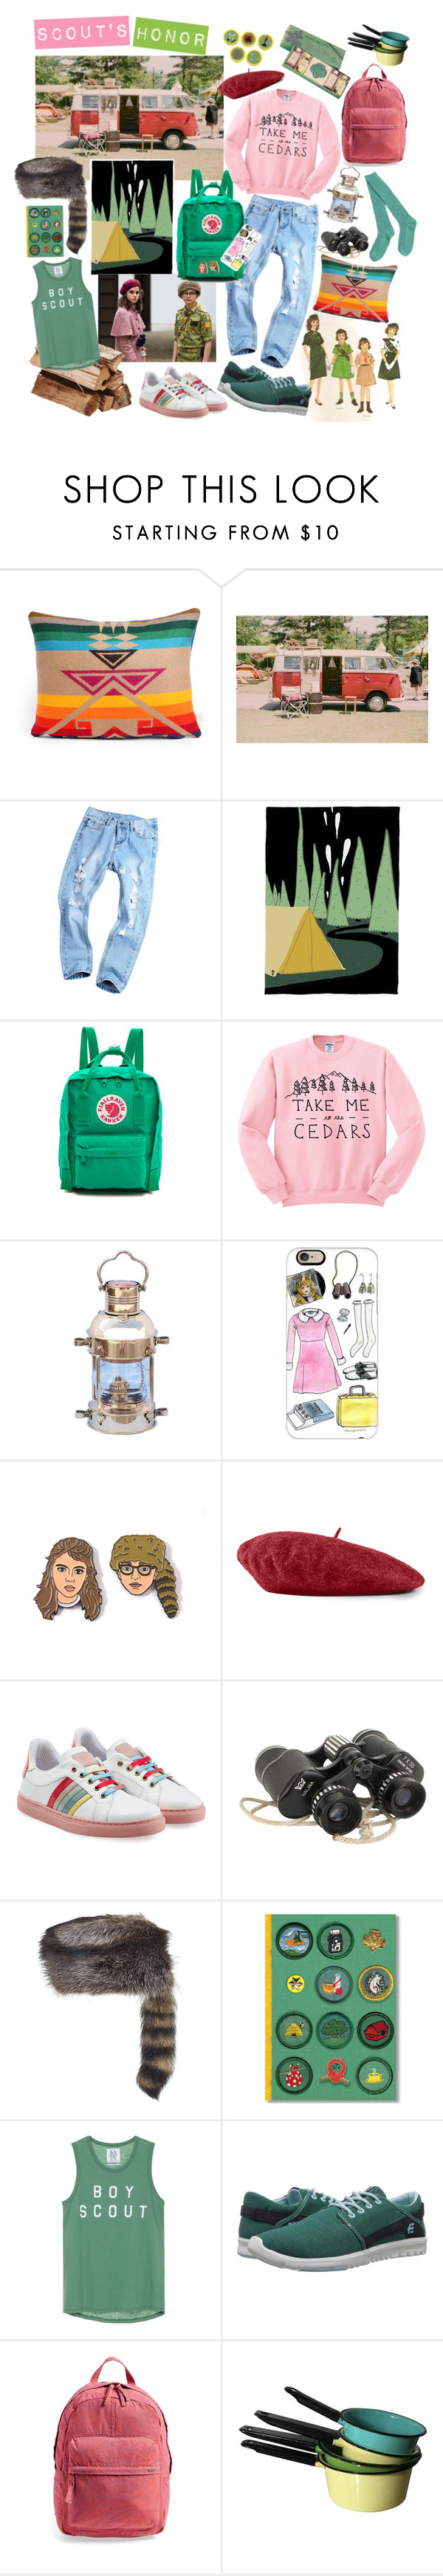 """""""scout's honor!"""" by rosemaryx ❤ liked on Polyvore featuring Fjällräven, Casetify, Gucci, RED Valentino, Overland Sheepskin Co., Etnies, RVCA, summercamp and 60secondstyle"""